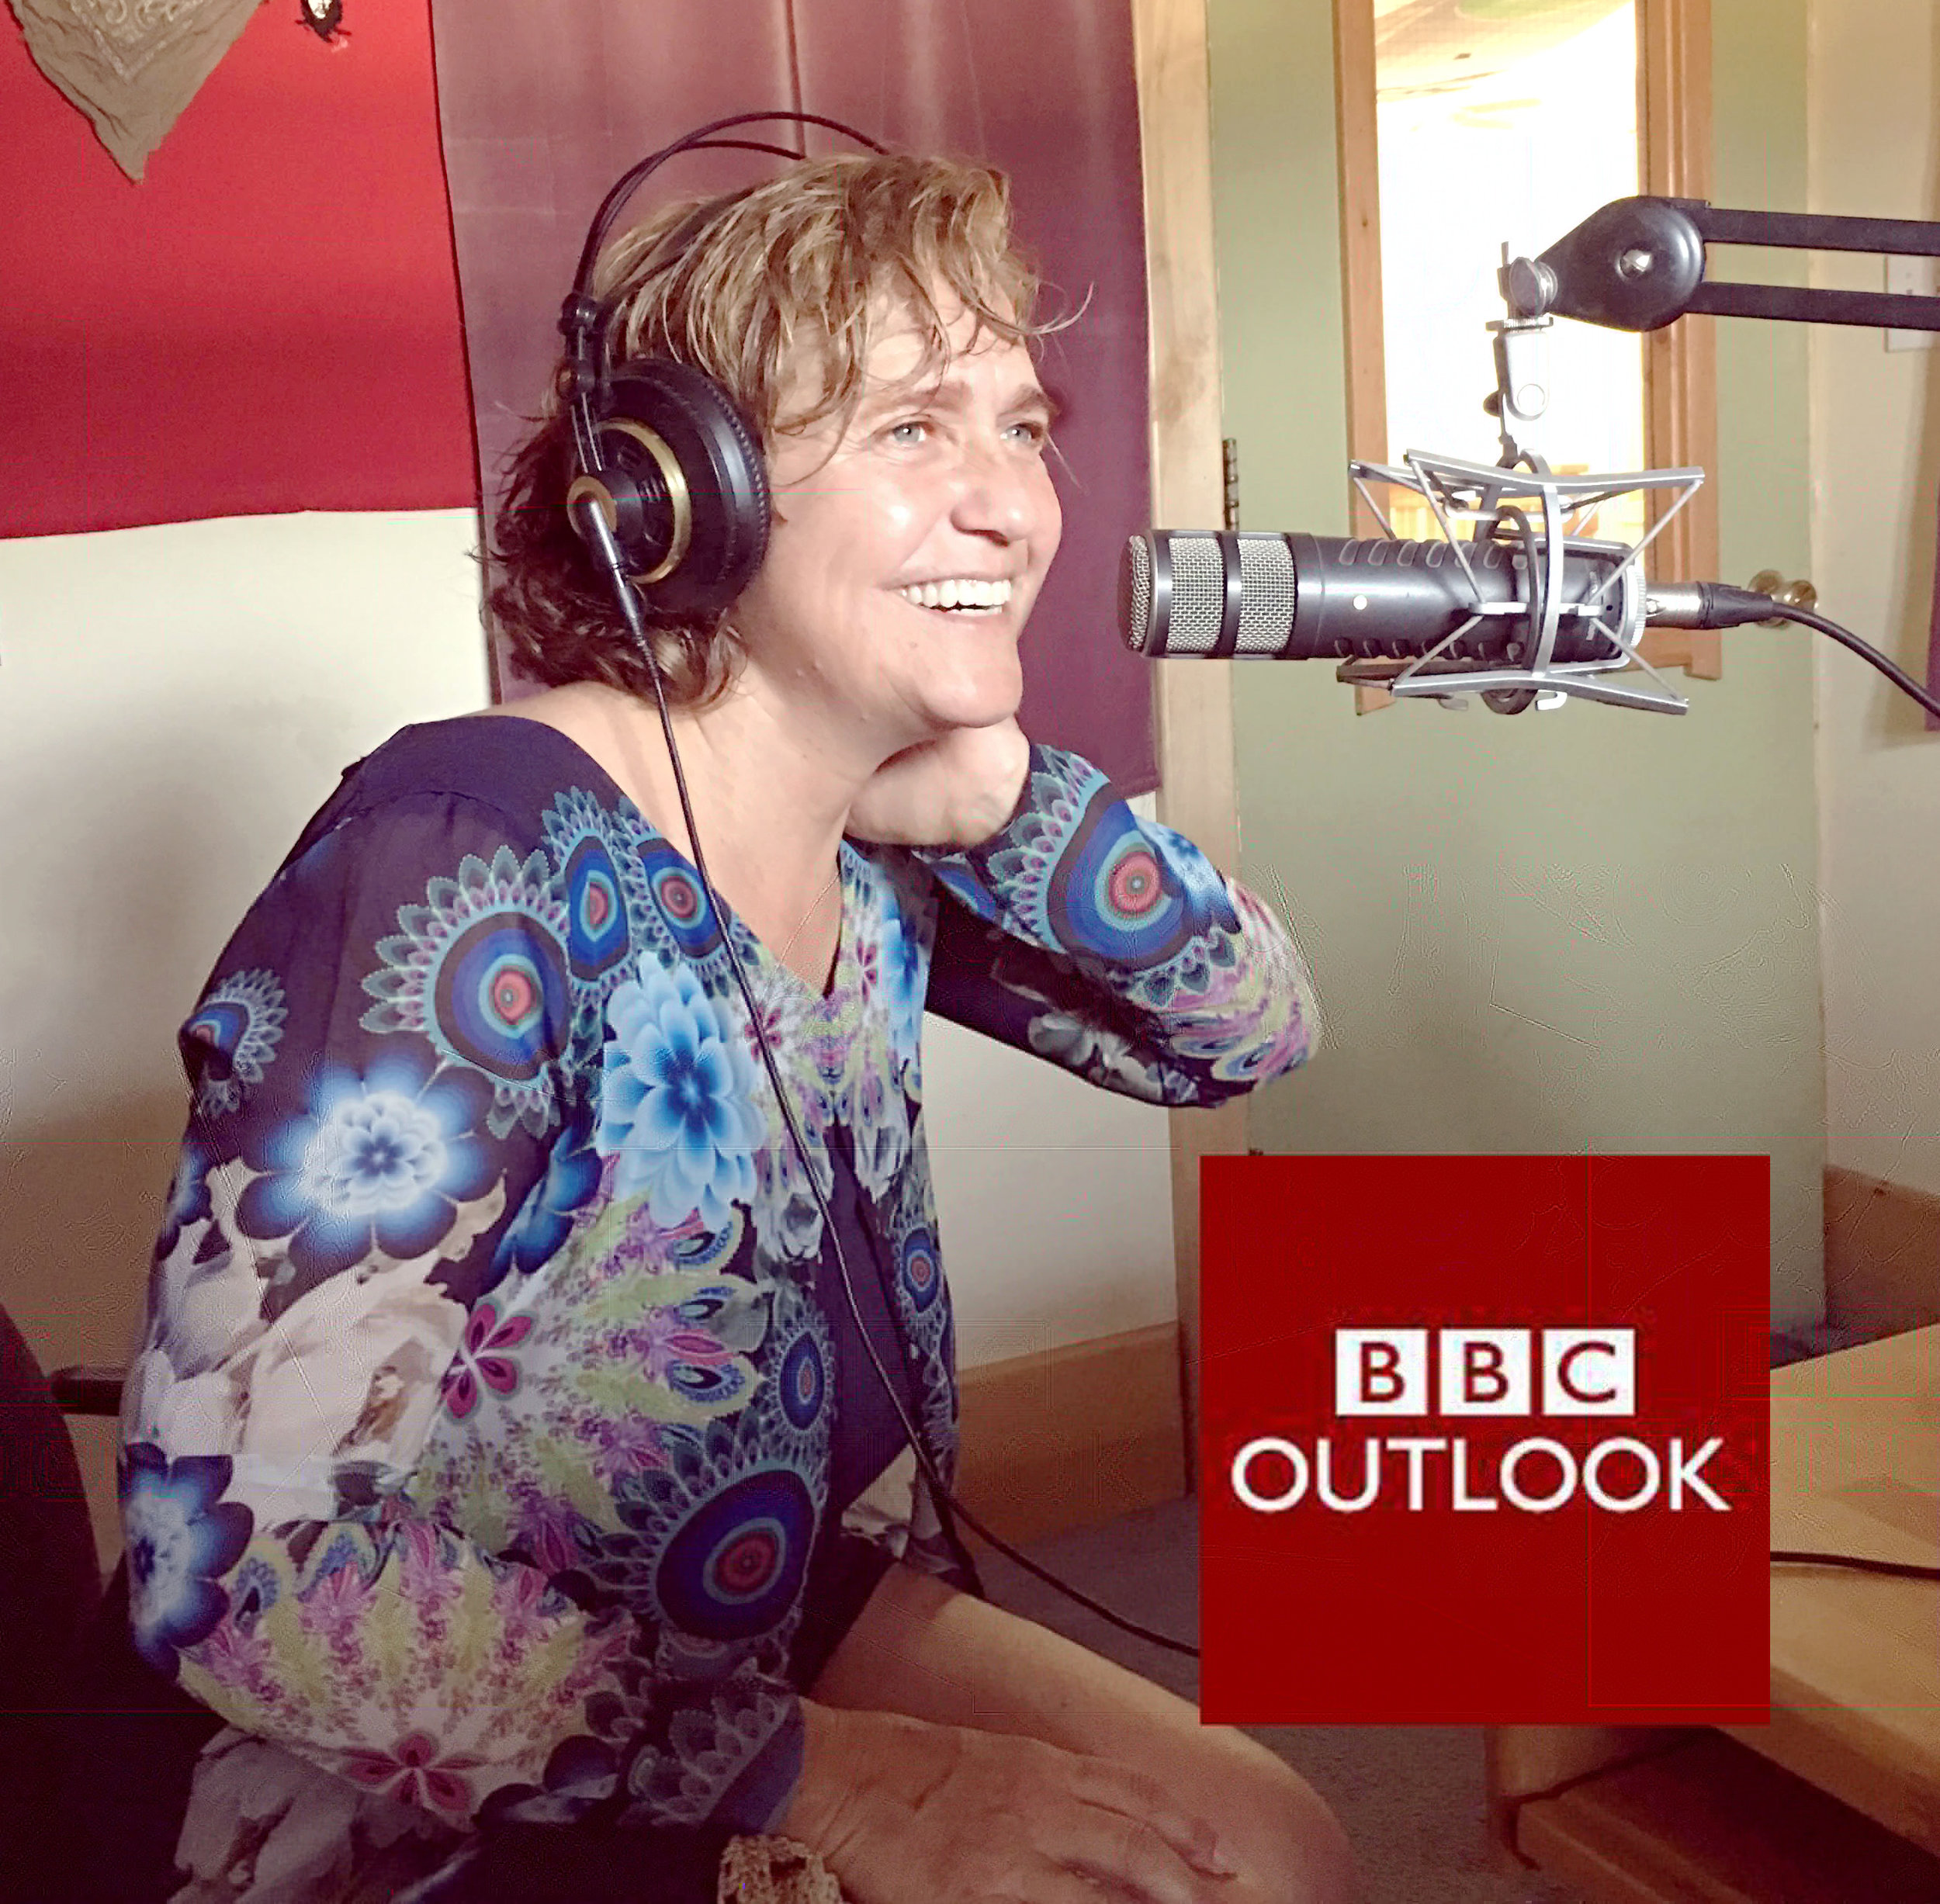 BBC Outlook - Cause to Wonder